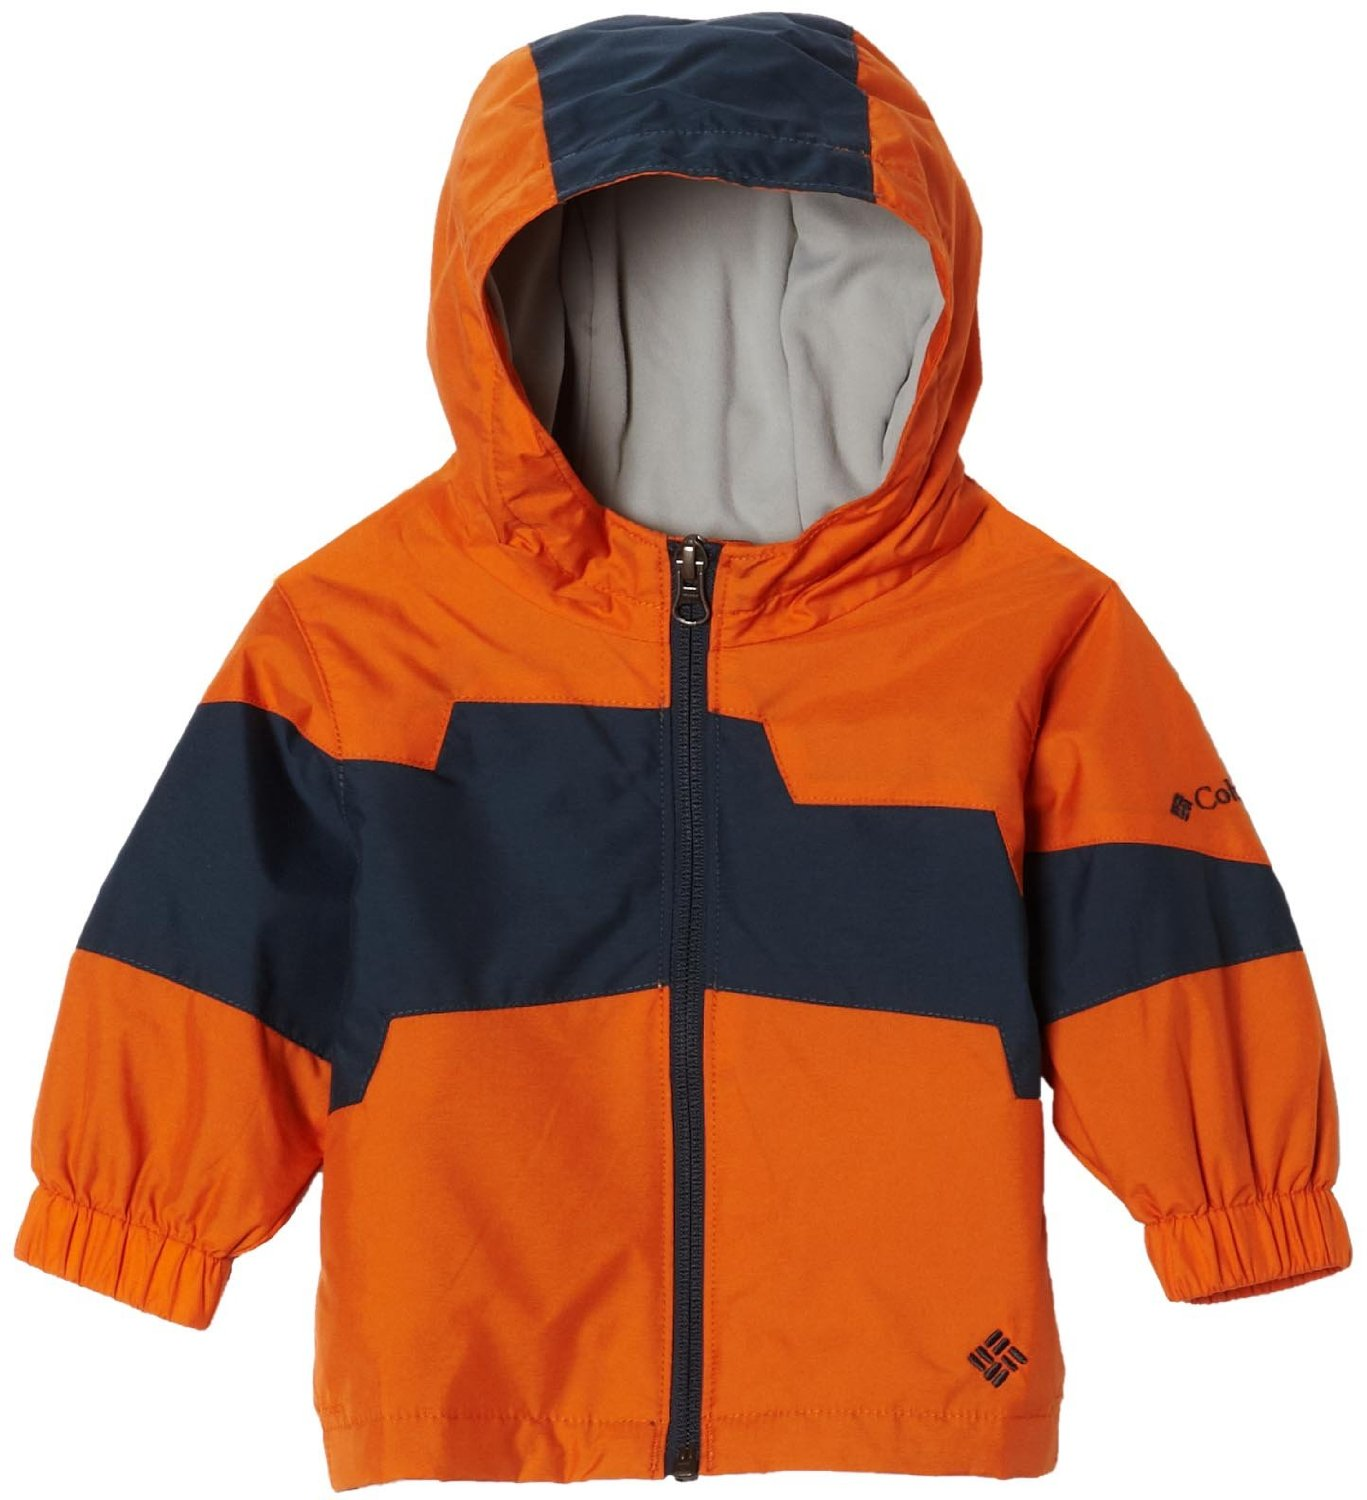 Find great deals on eBay for childrens winter coats. Shop with confidence.